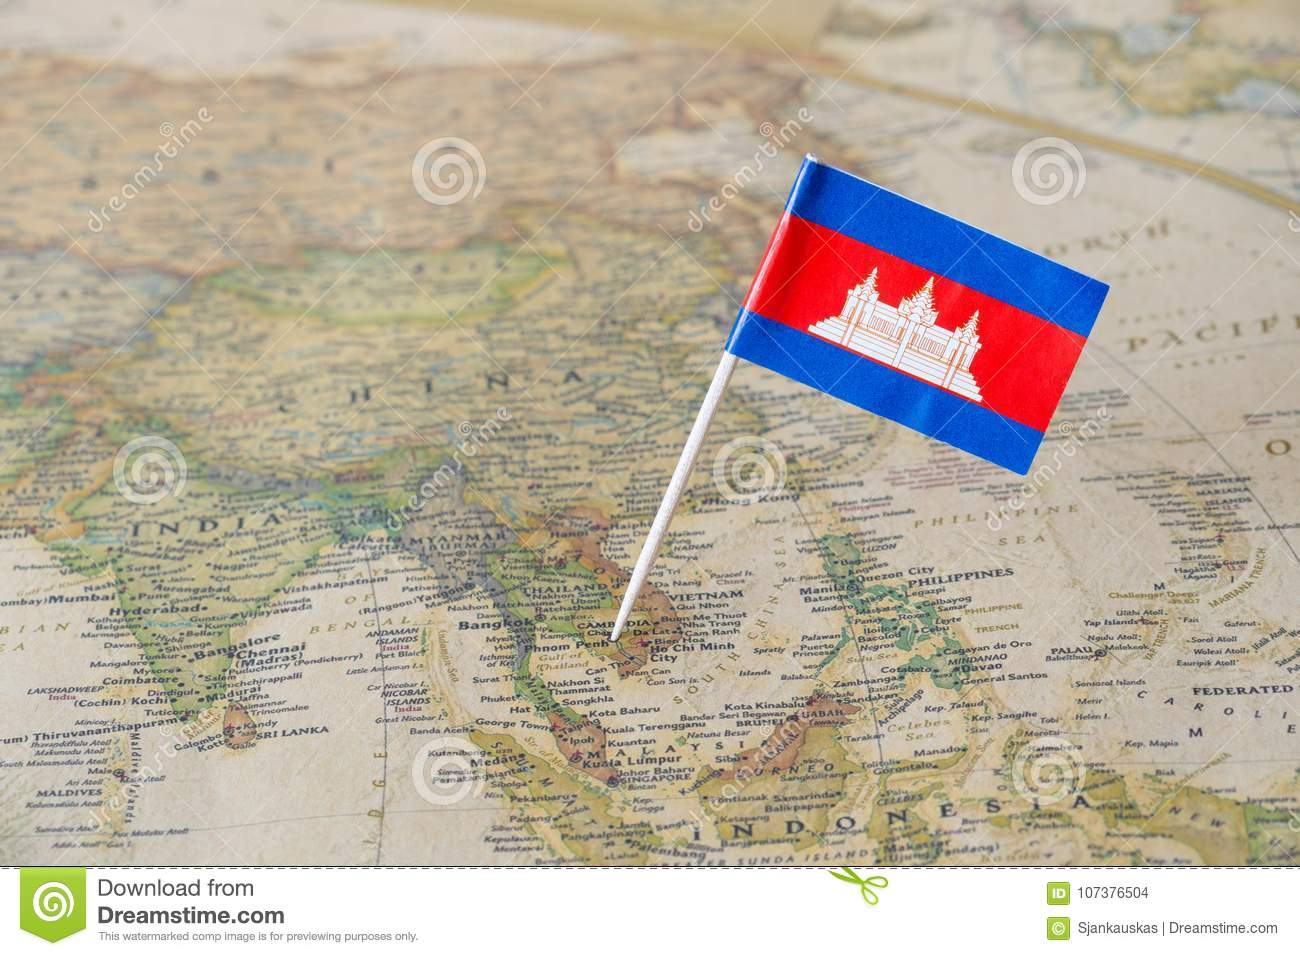 Cambodia flag on a map